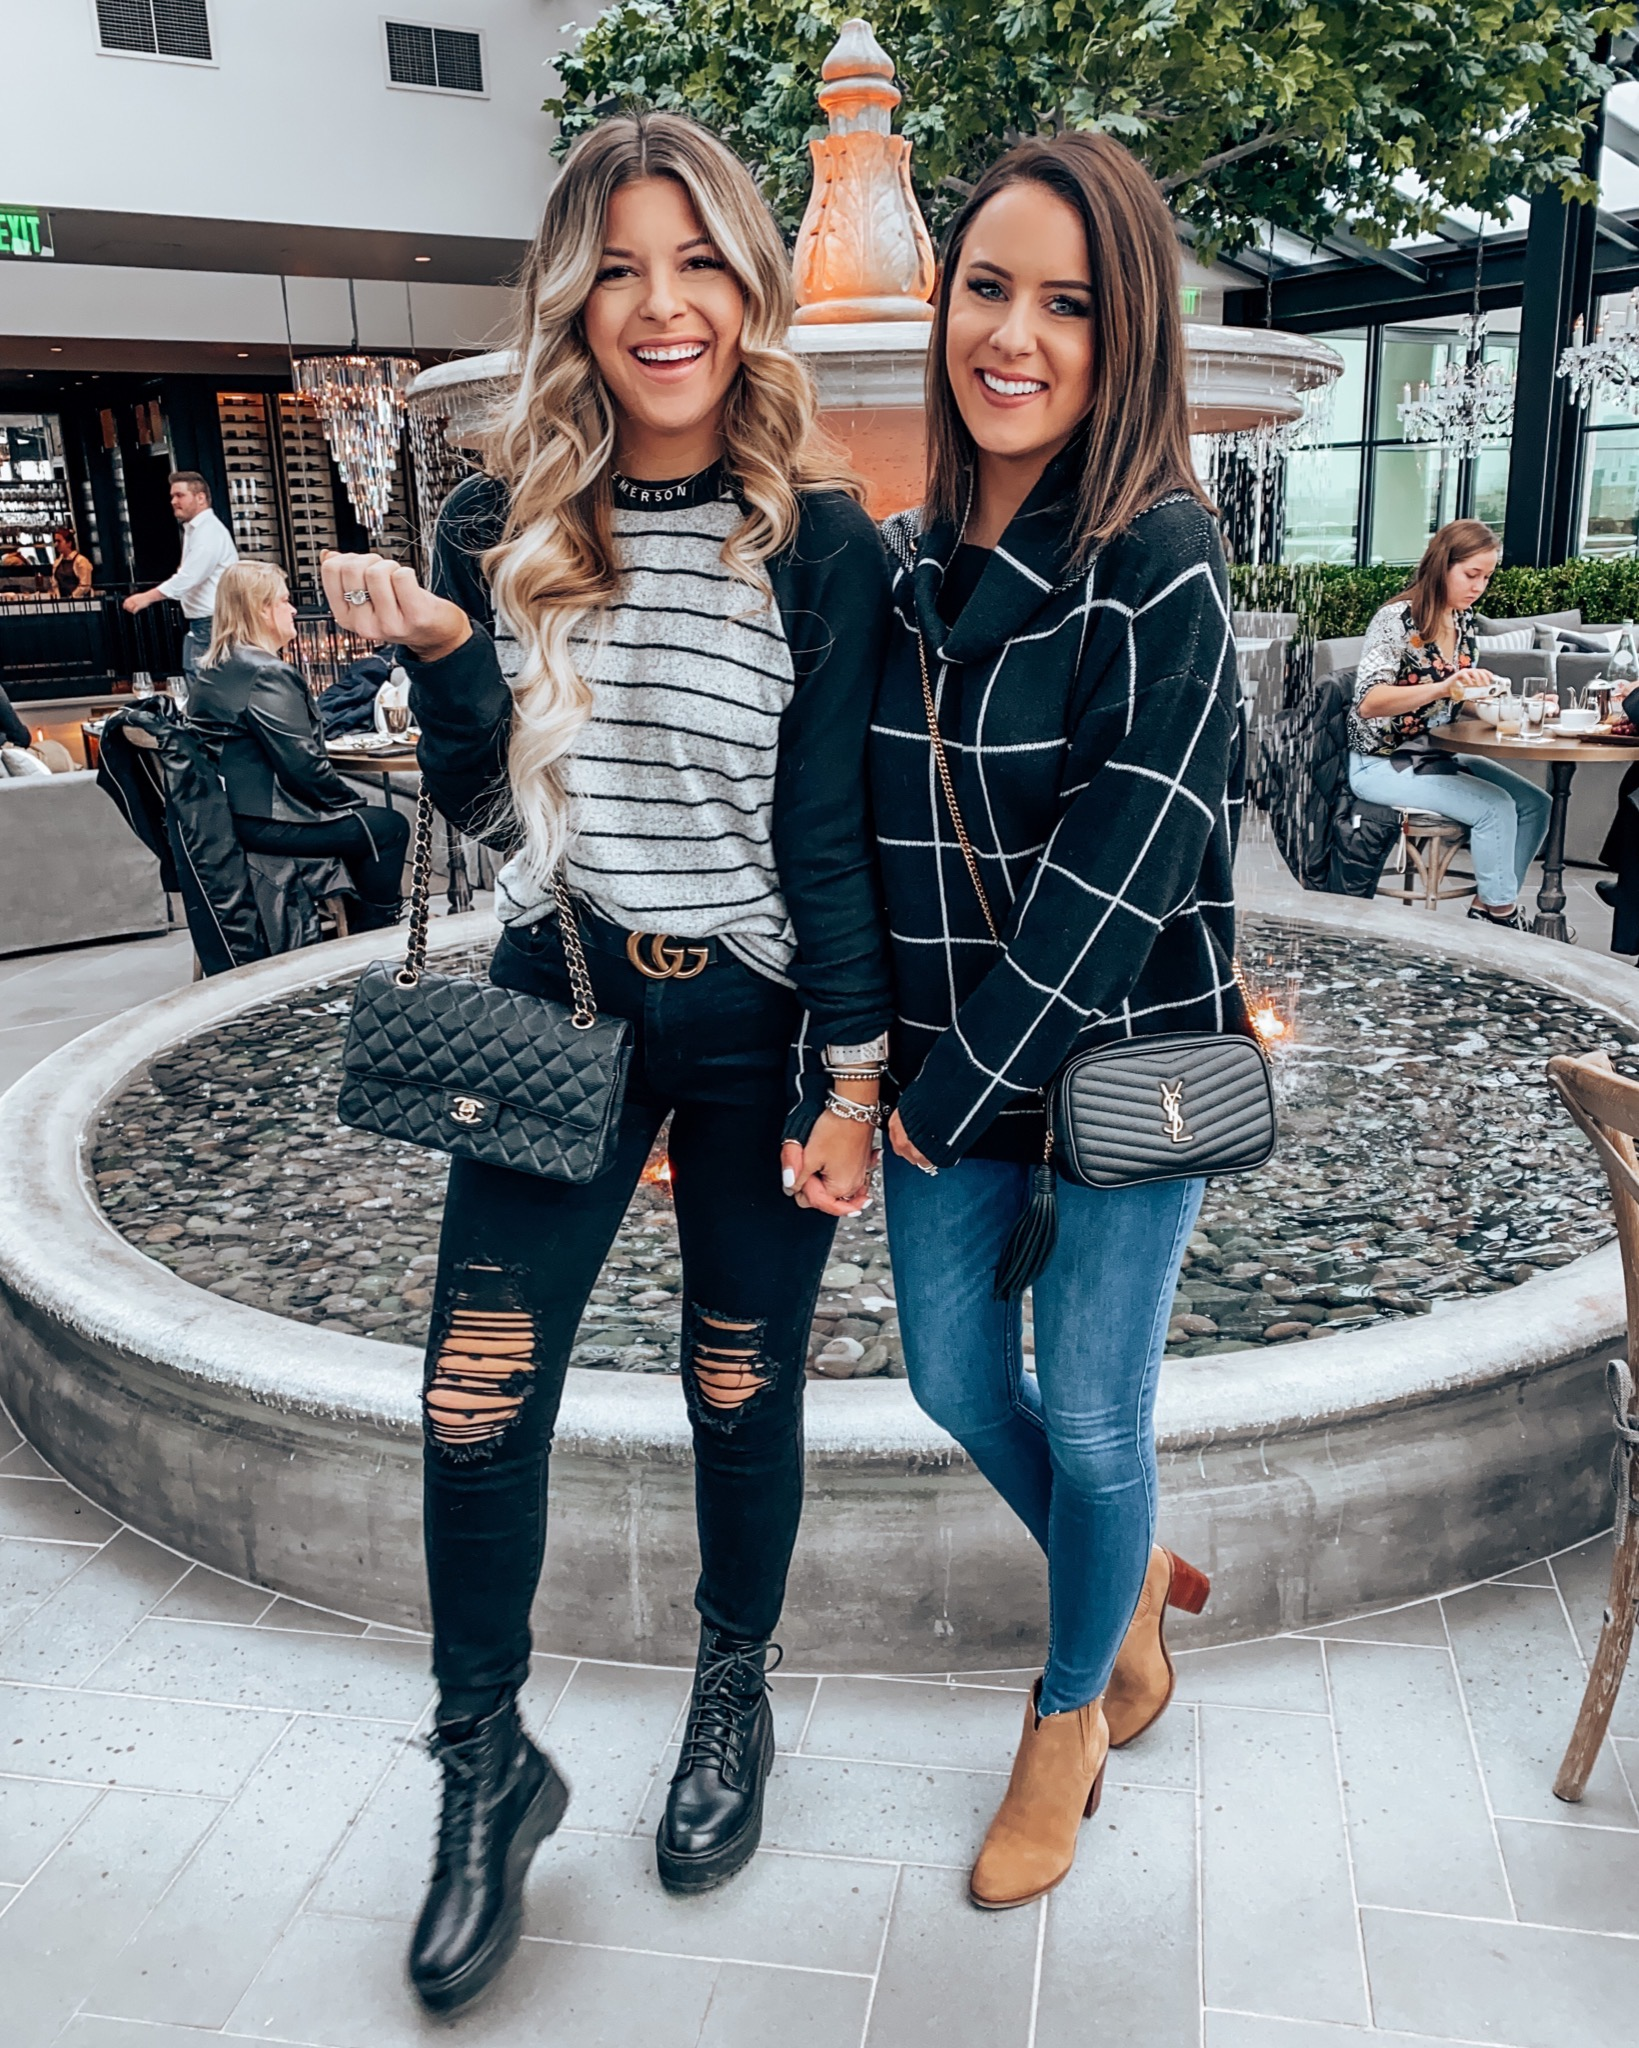 Spring Transition Outfits   Style Blogger Lauren Meyer shares Spring Transition Outfit Ideas